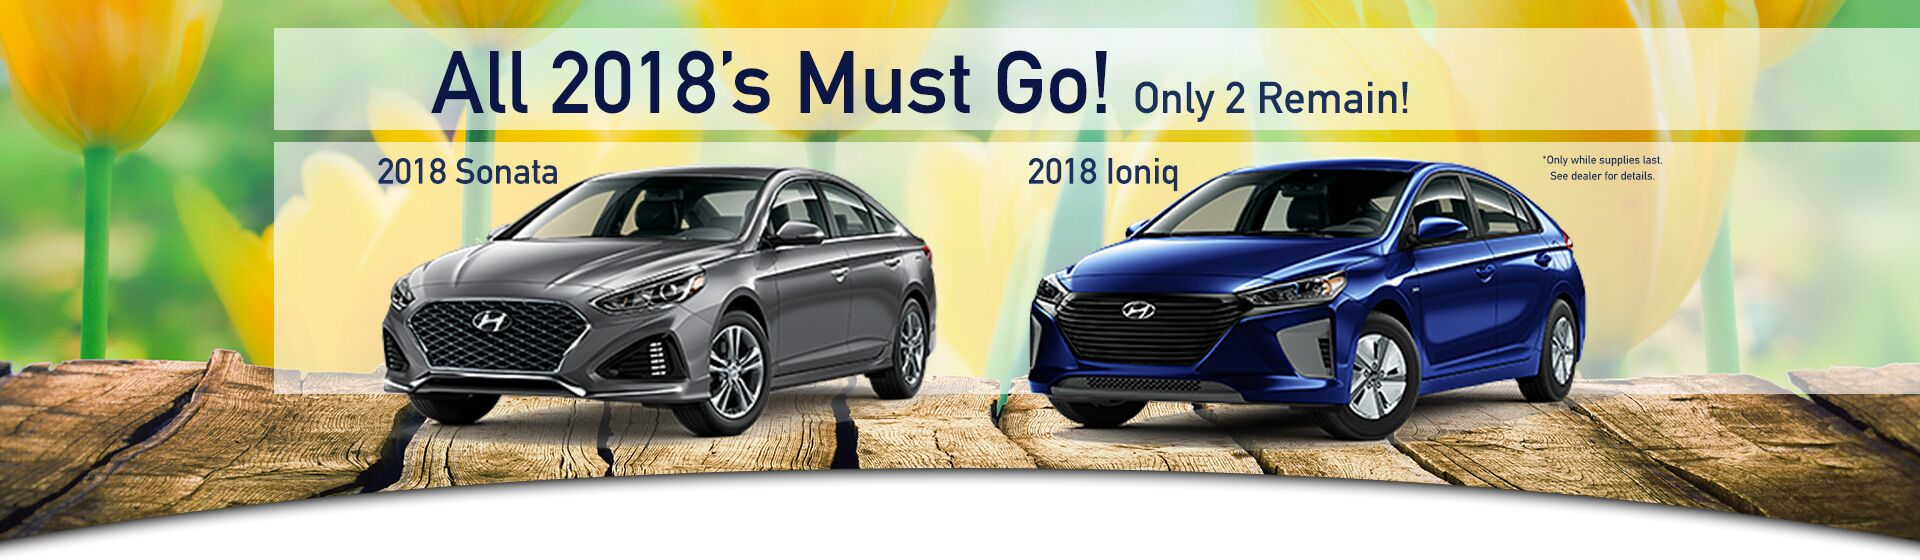 2018 Hyunda Sonata and IONIQ